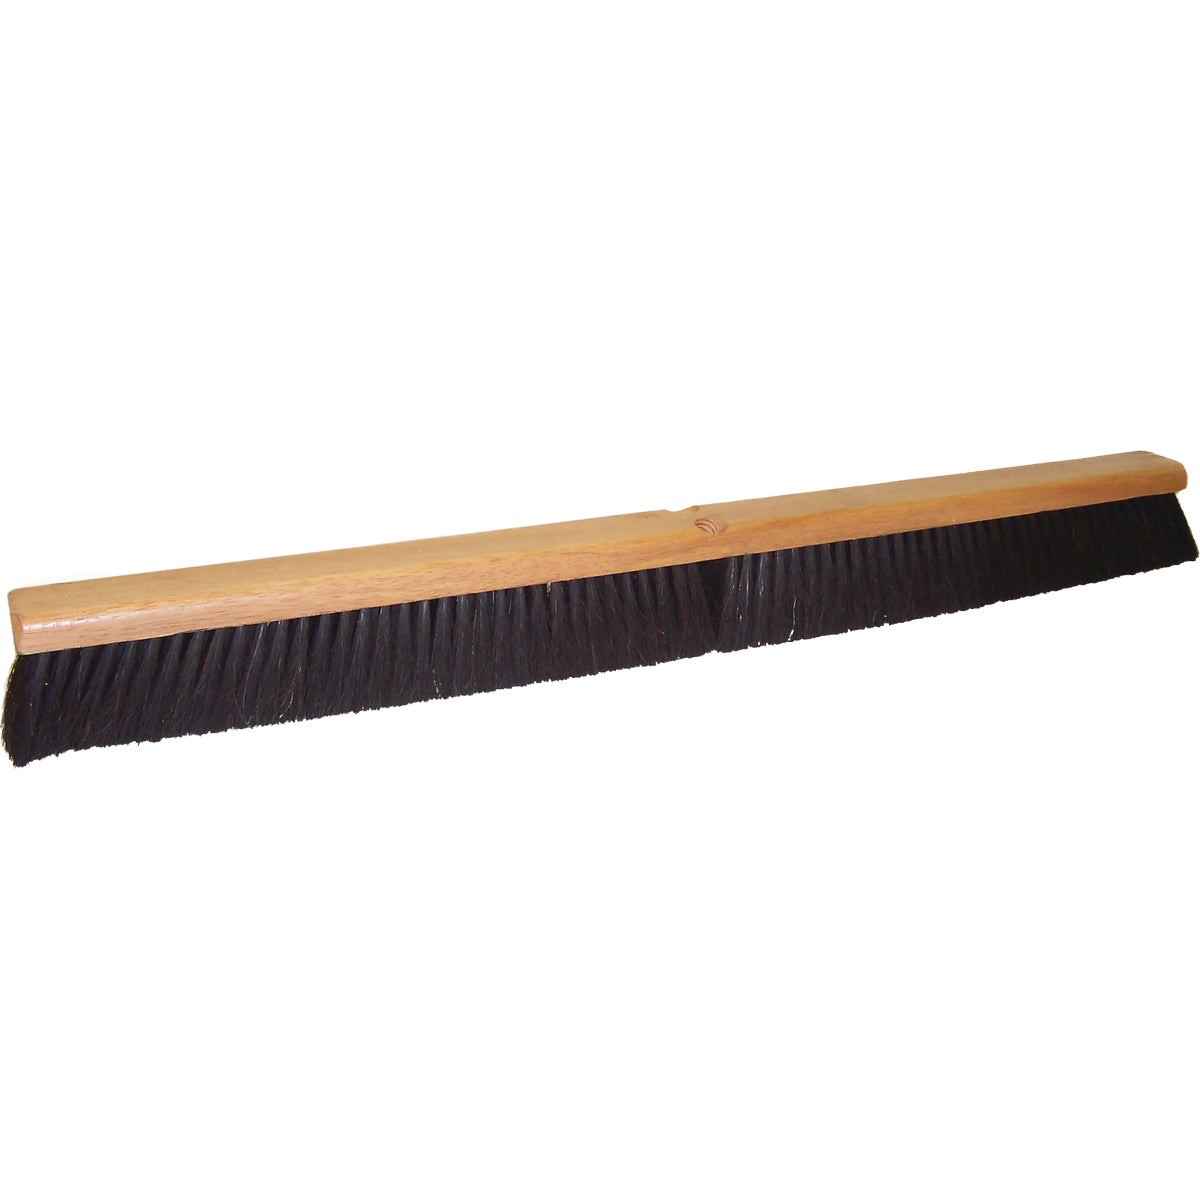 "36"" POLY PUSH BROOM - 10645 by D Q B Ind"